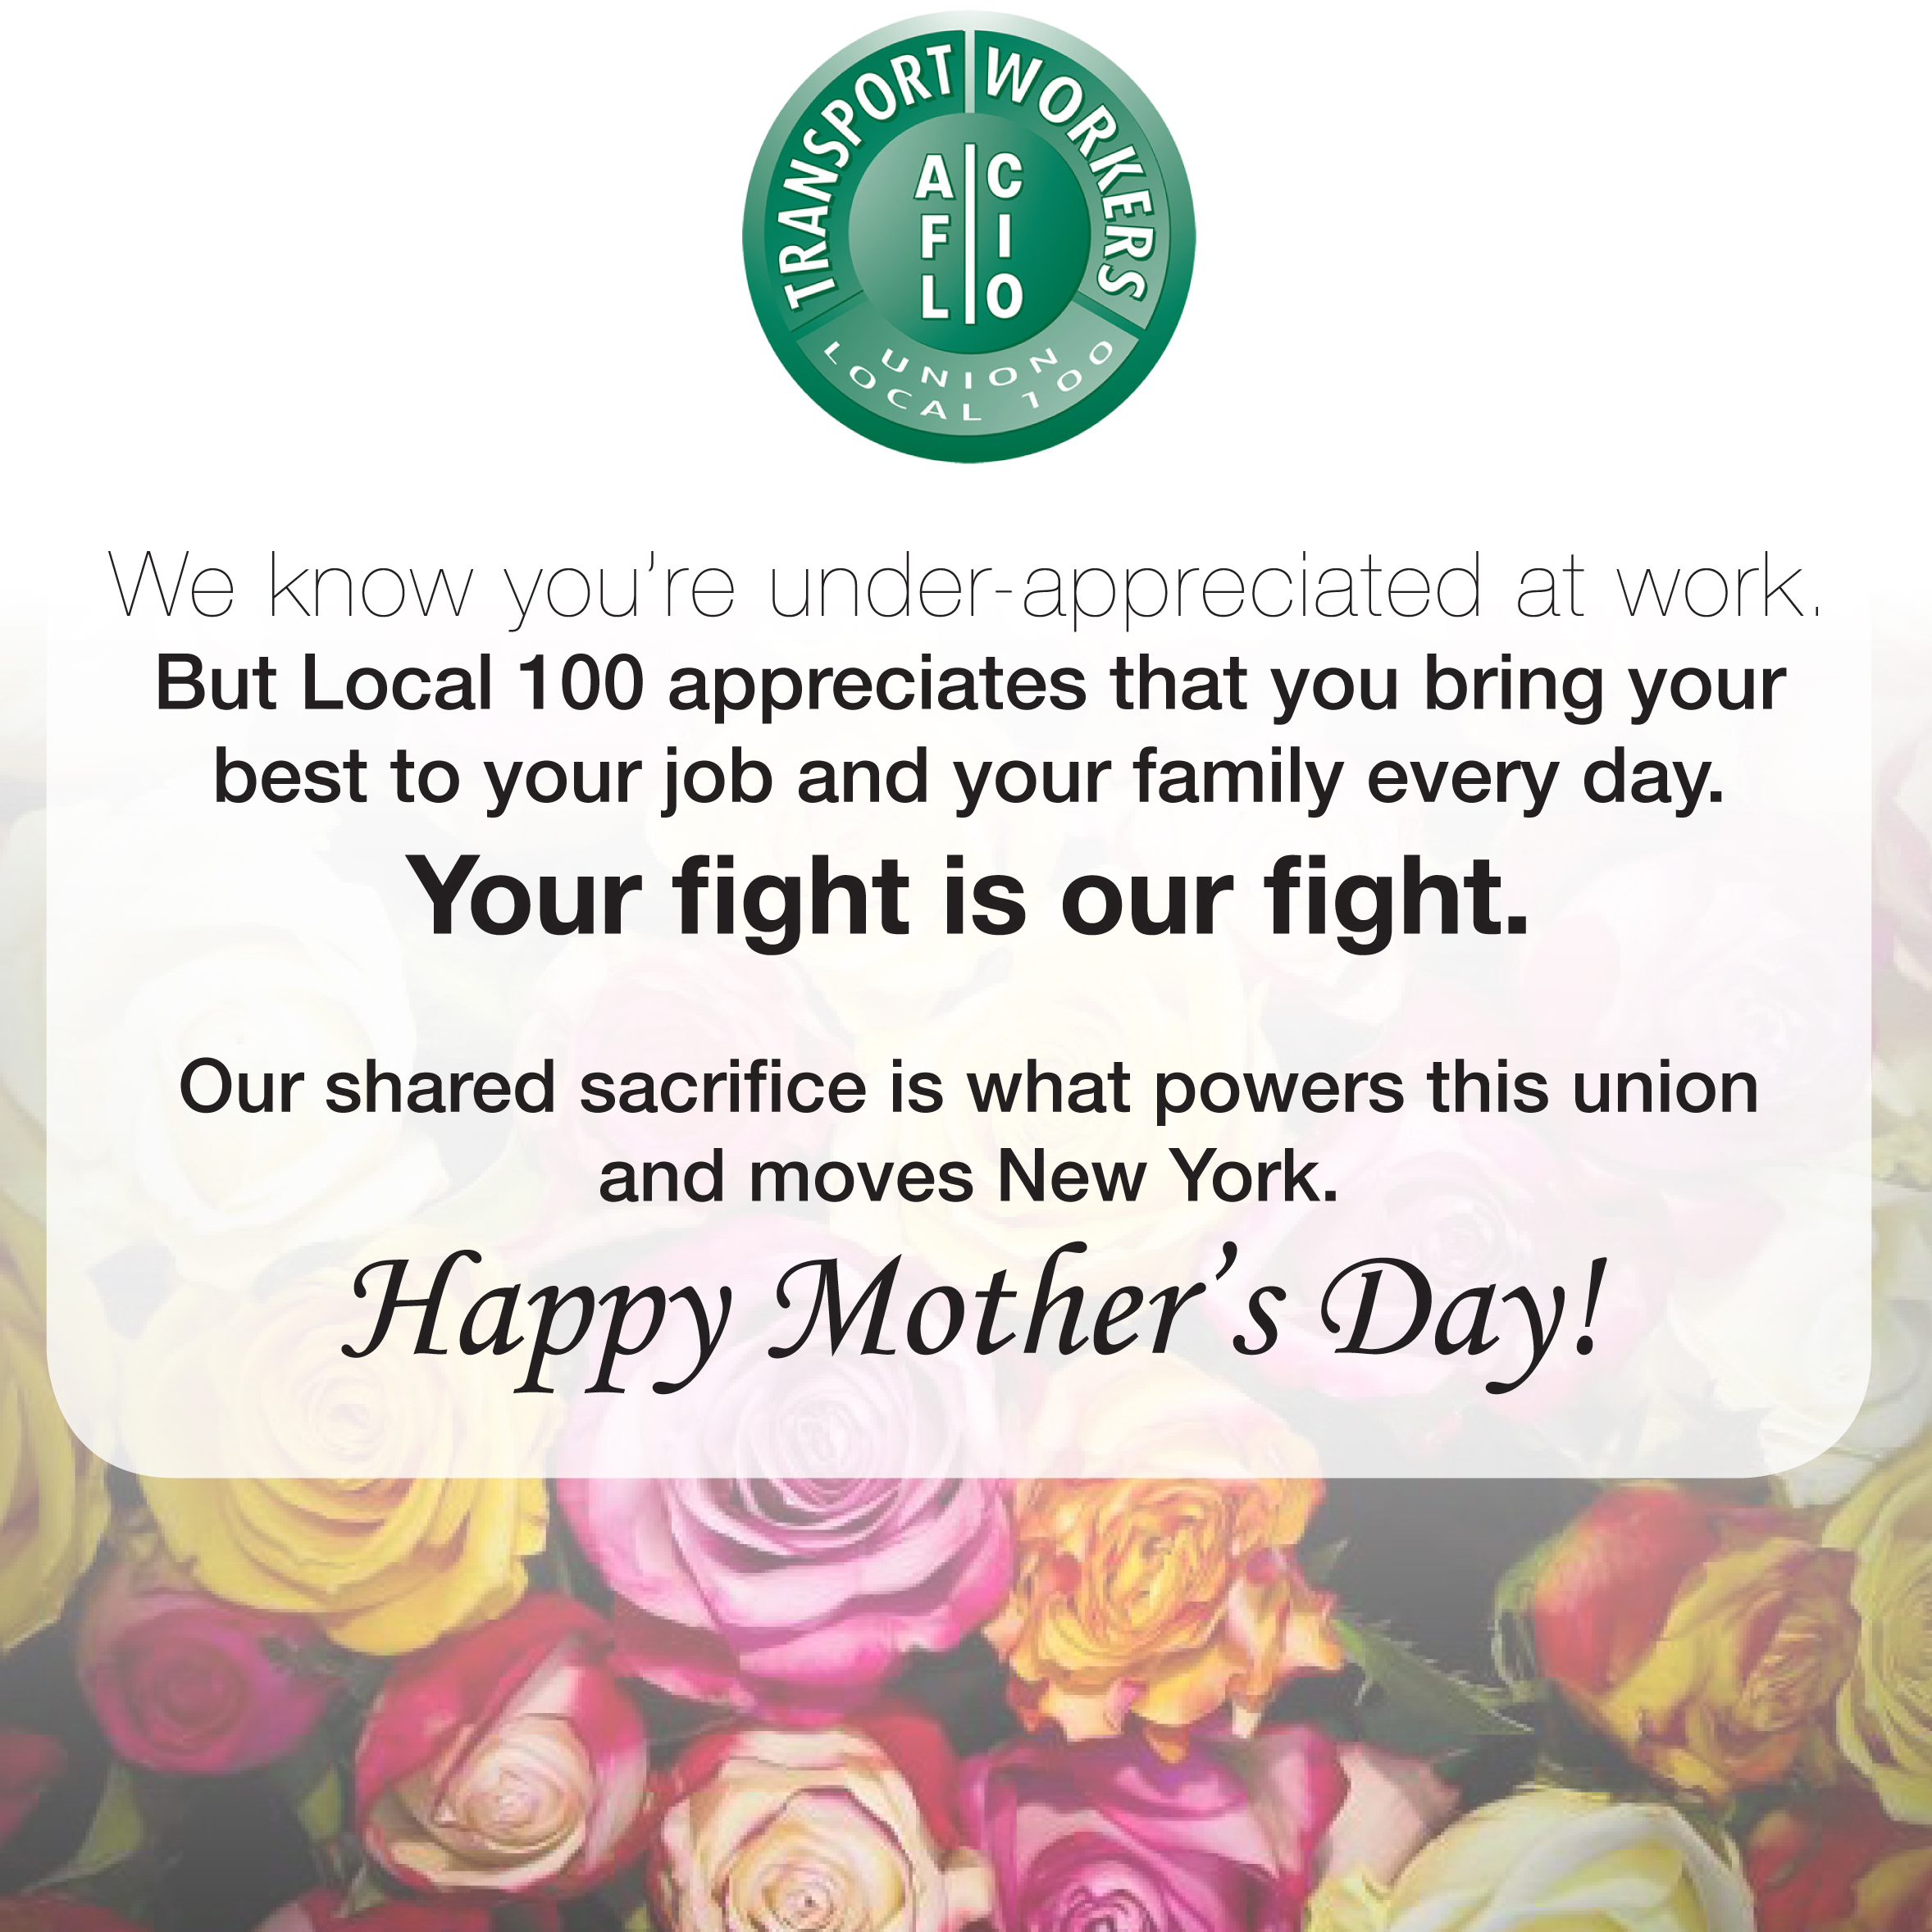 Mothers Day Greetings From Your Union Twu Local 100